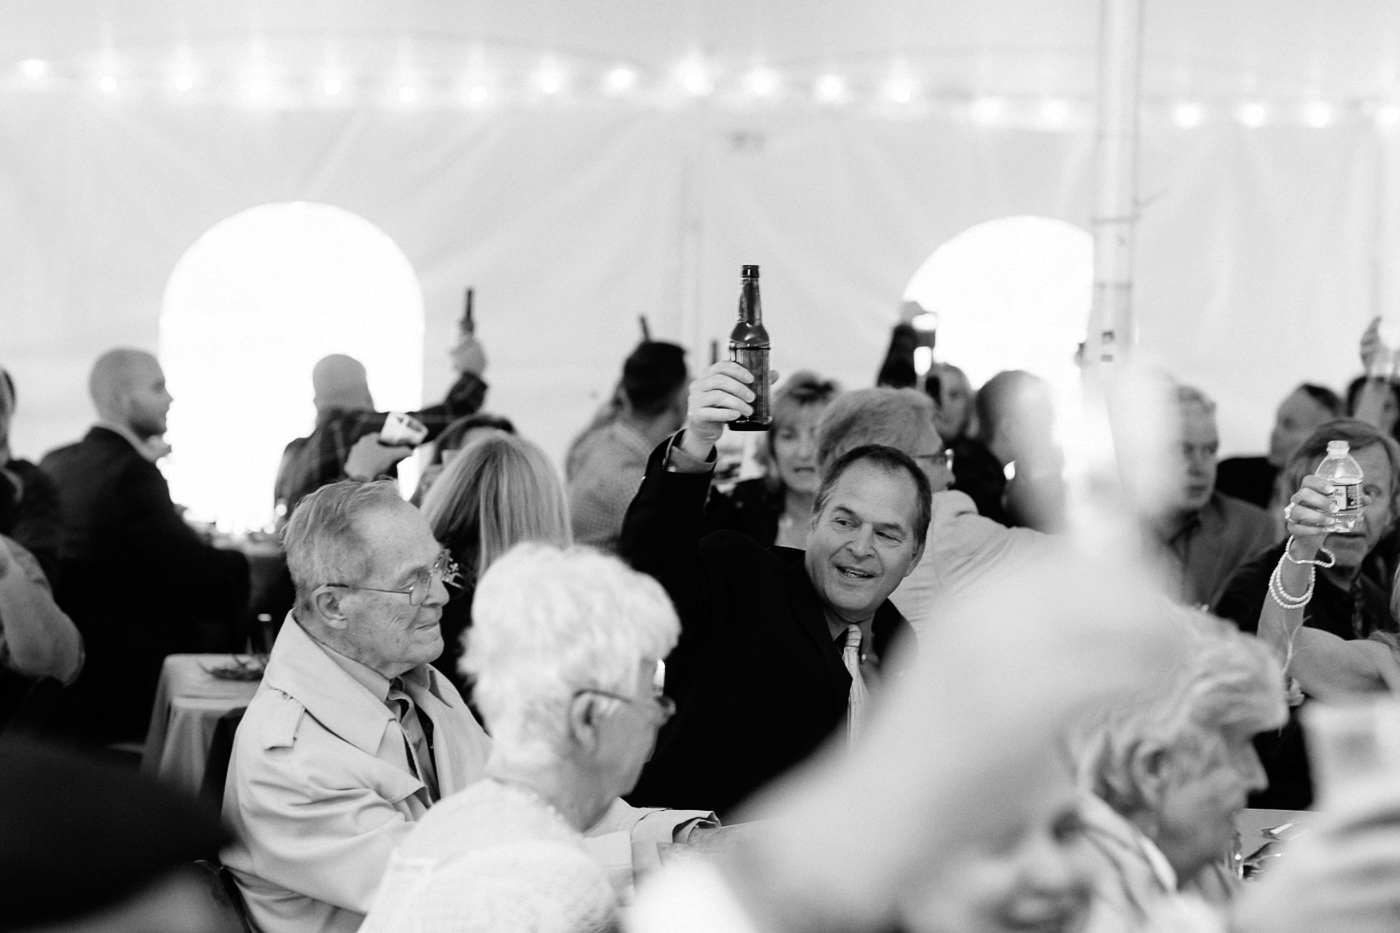 Father of the groom raising a glass